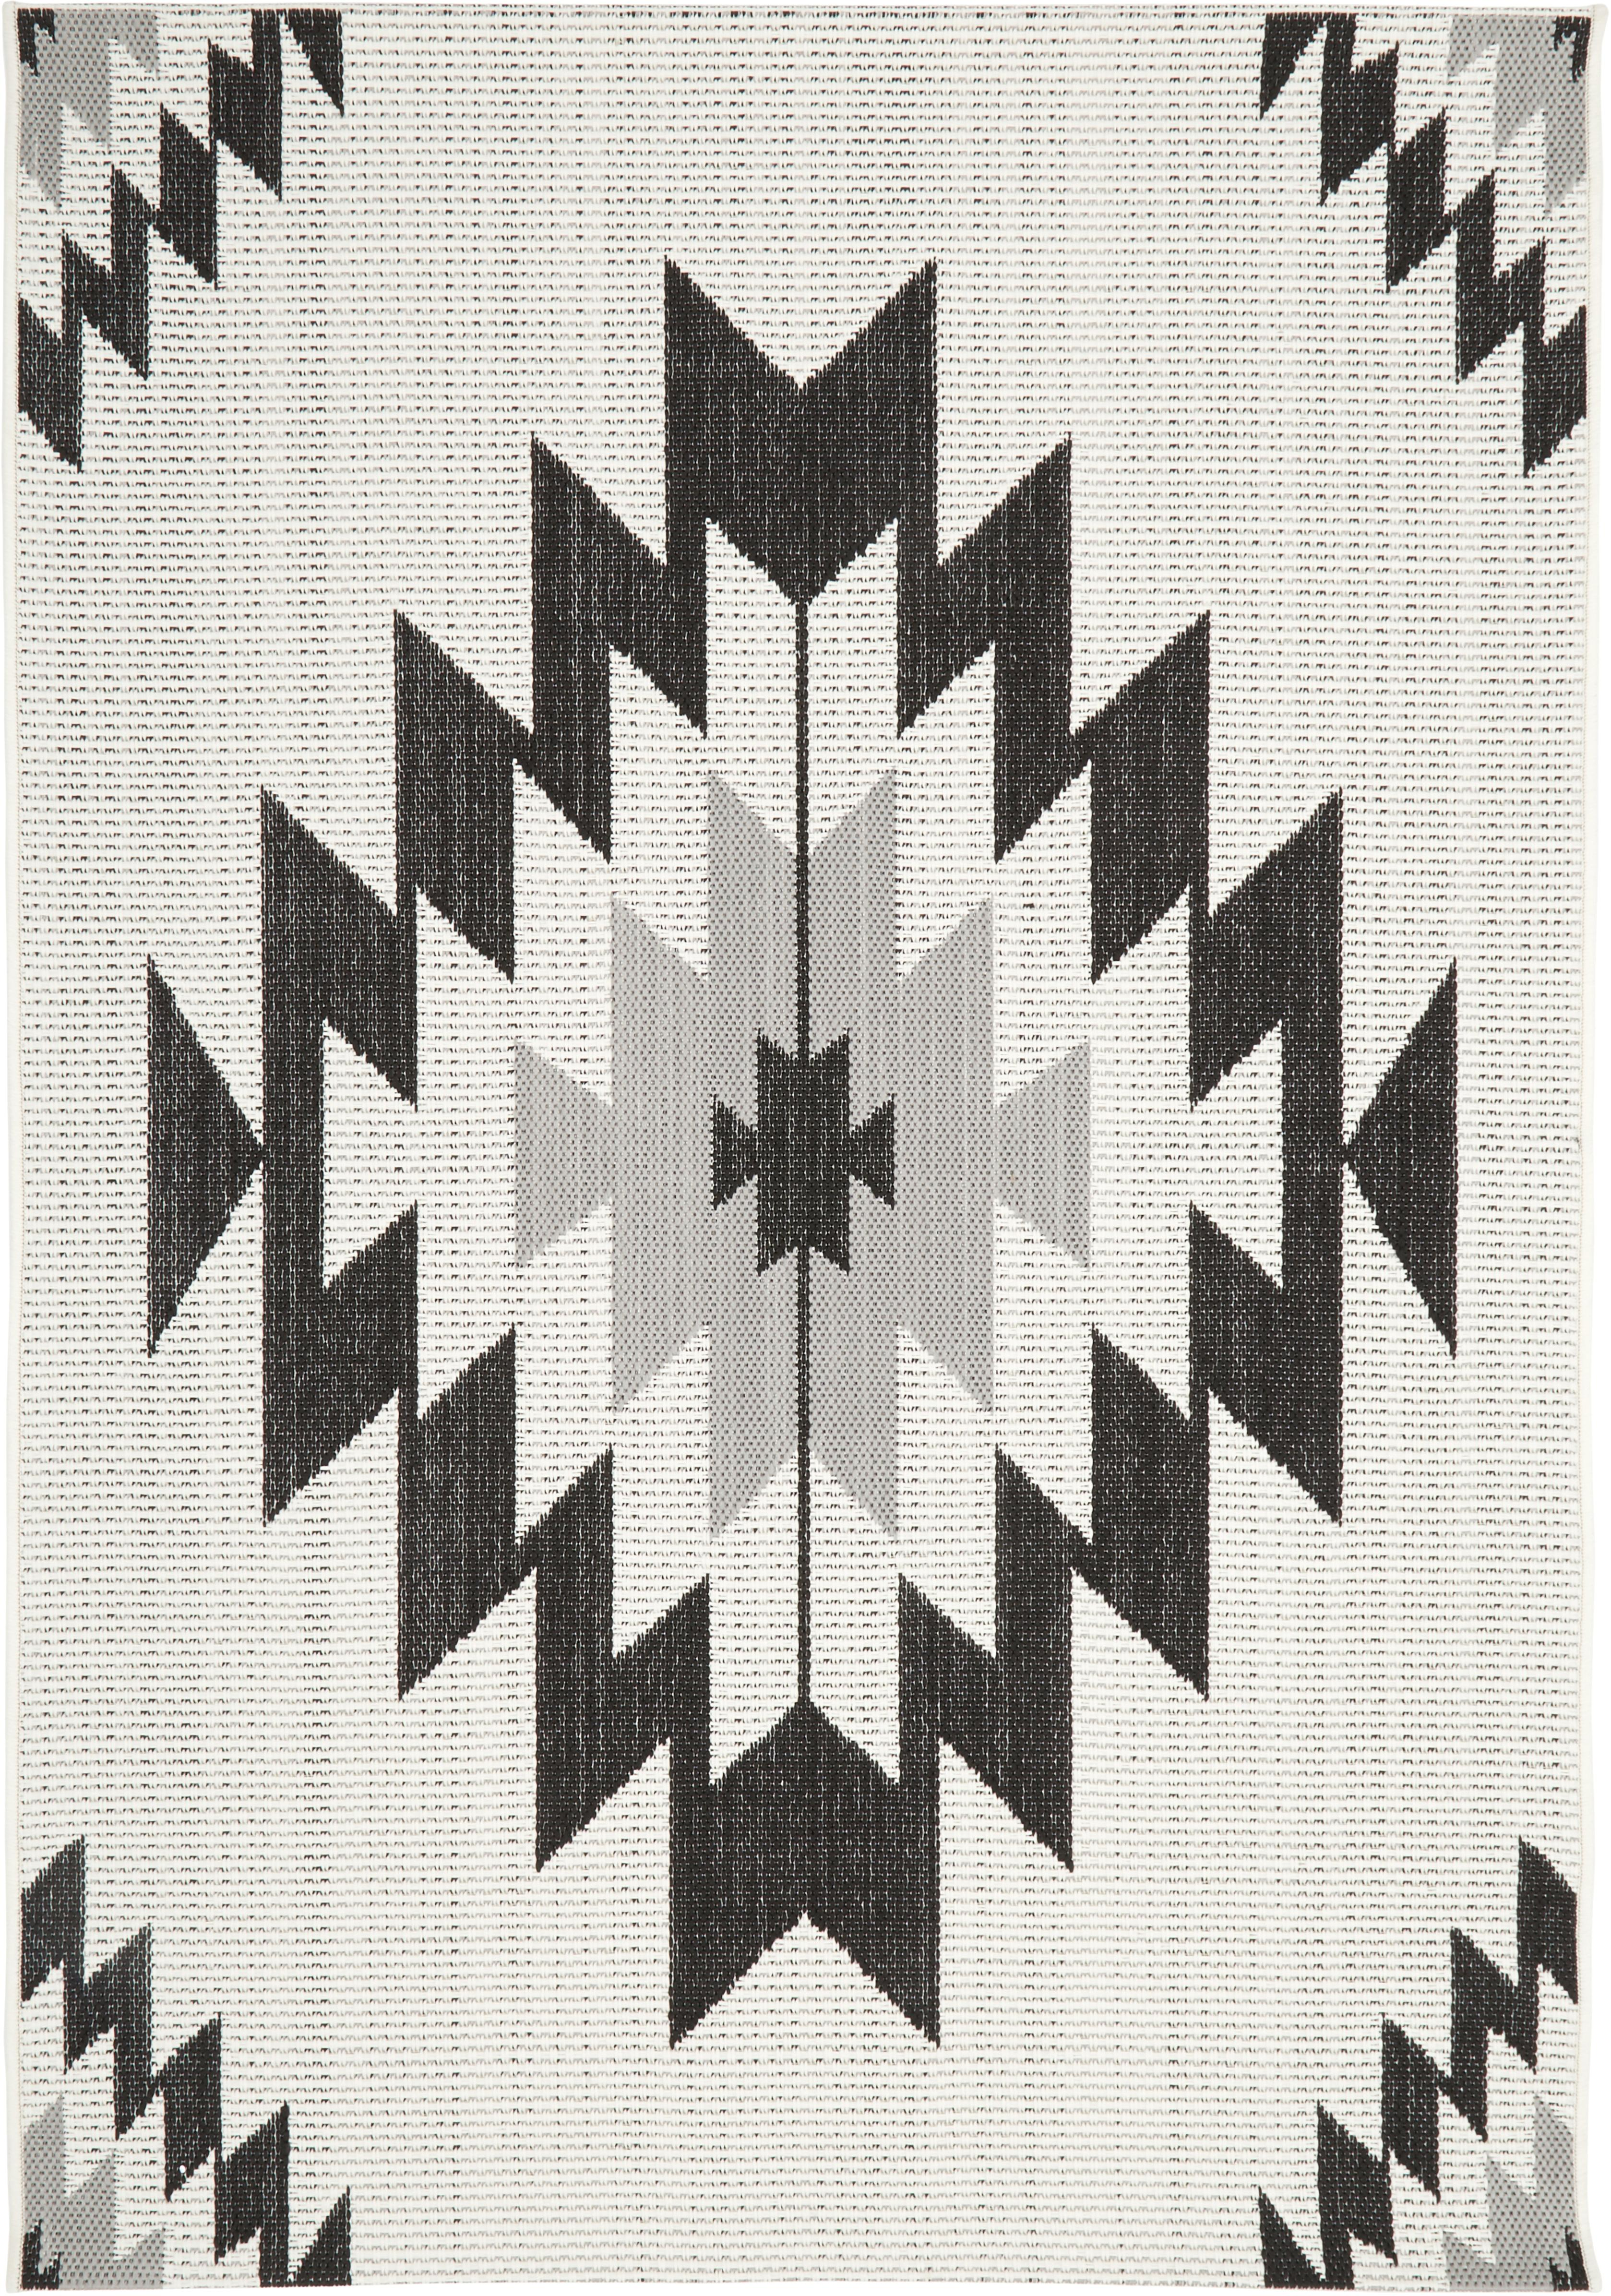 In Outdoor Teppich Ikat Mit Ethno Muster Westwingnow